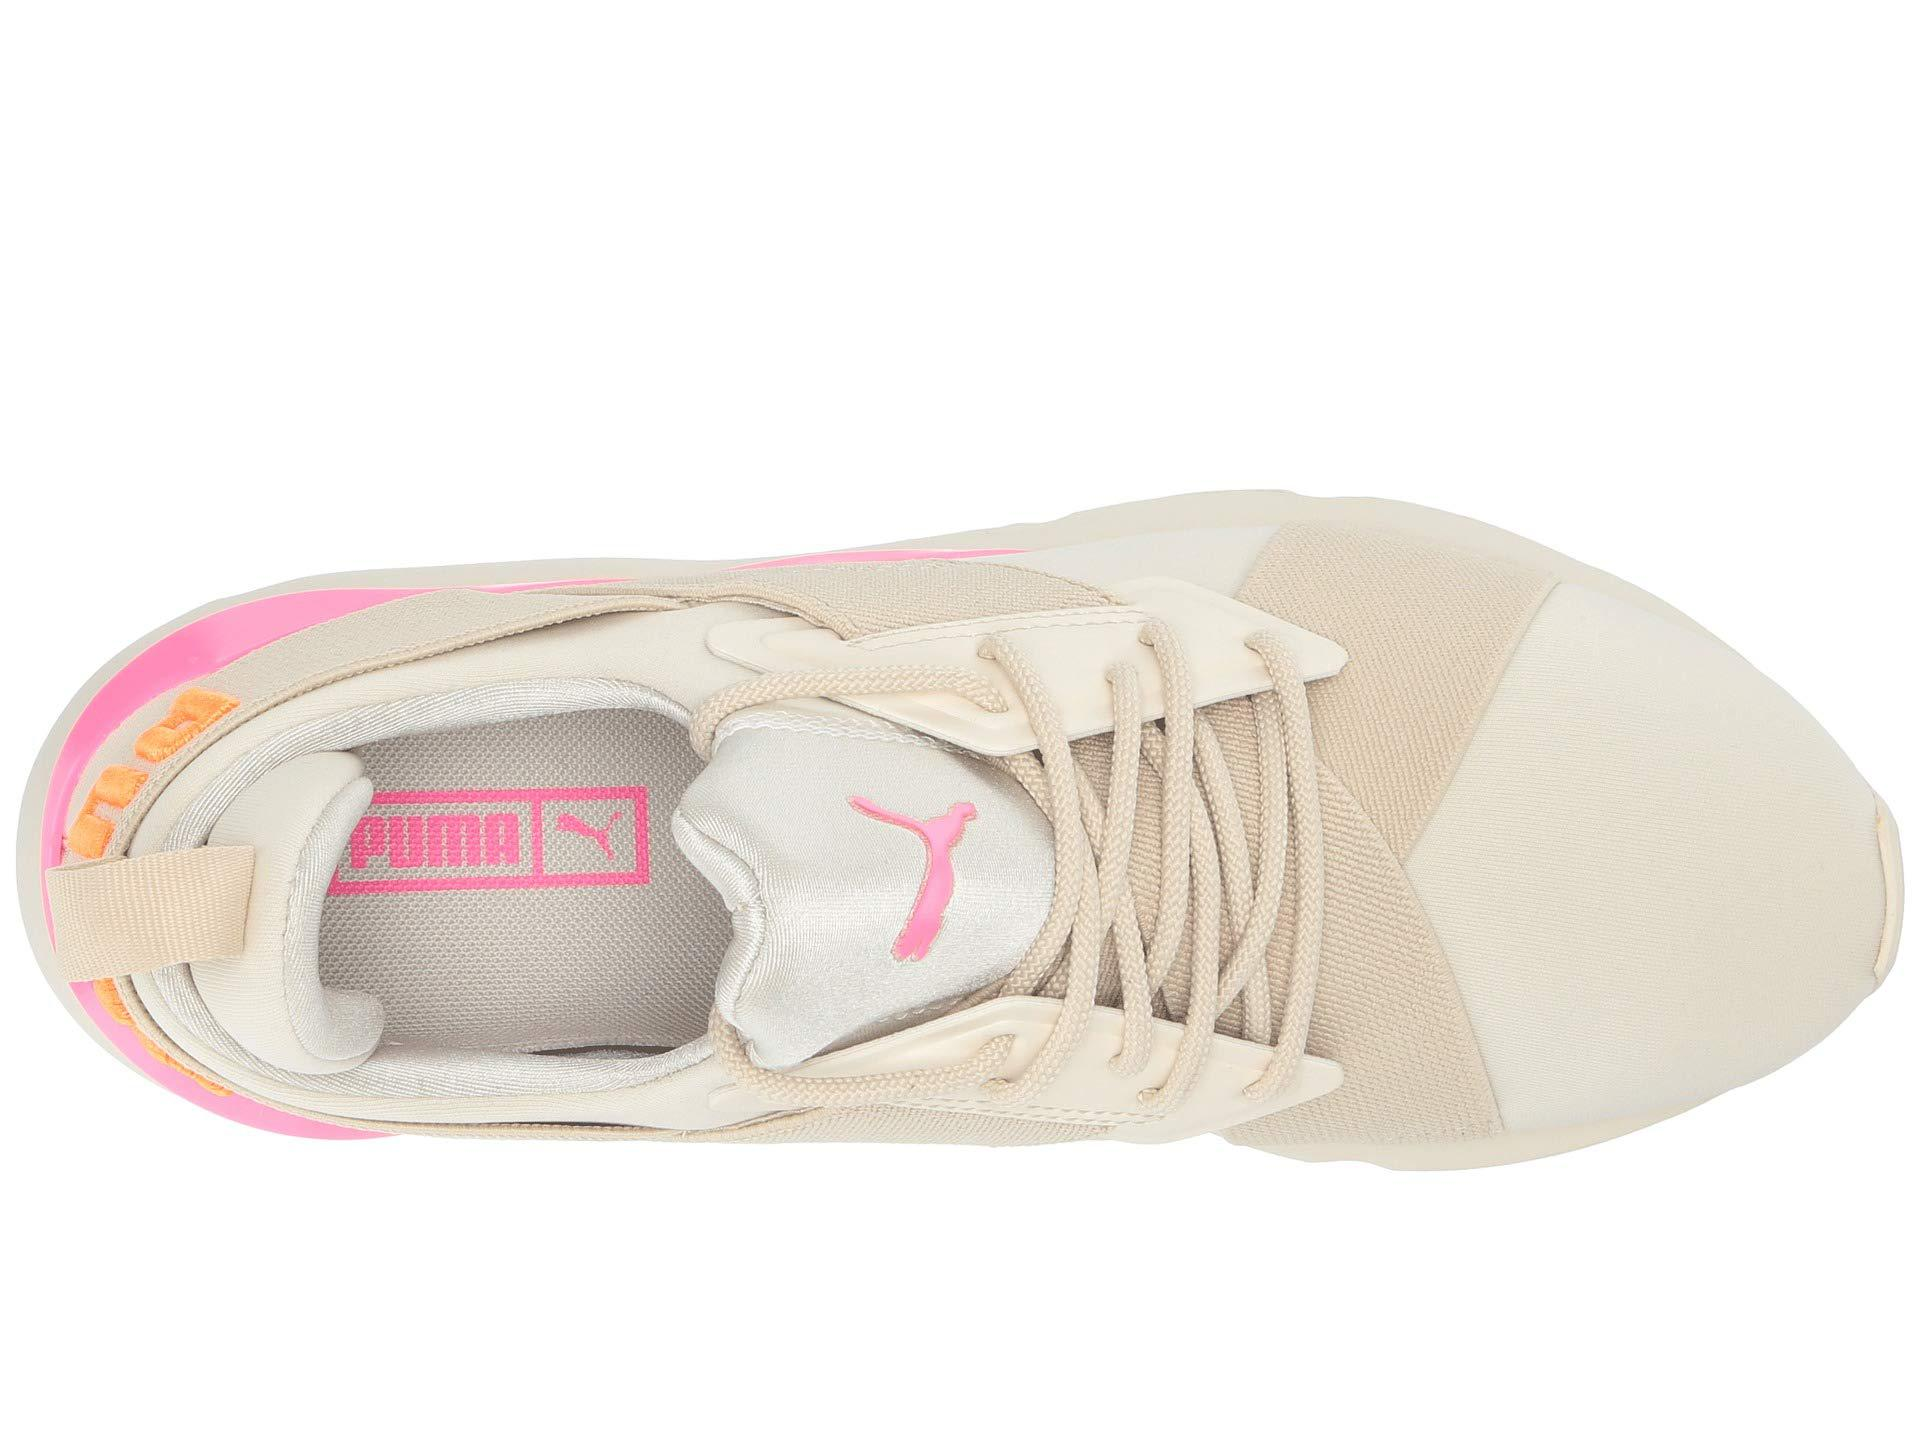 muse chase women's sneakers